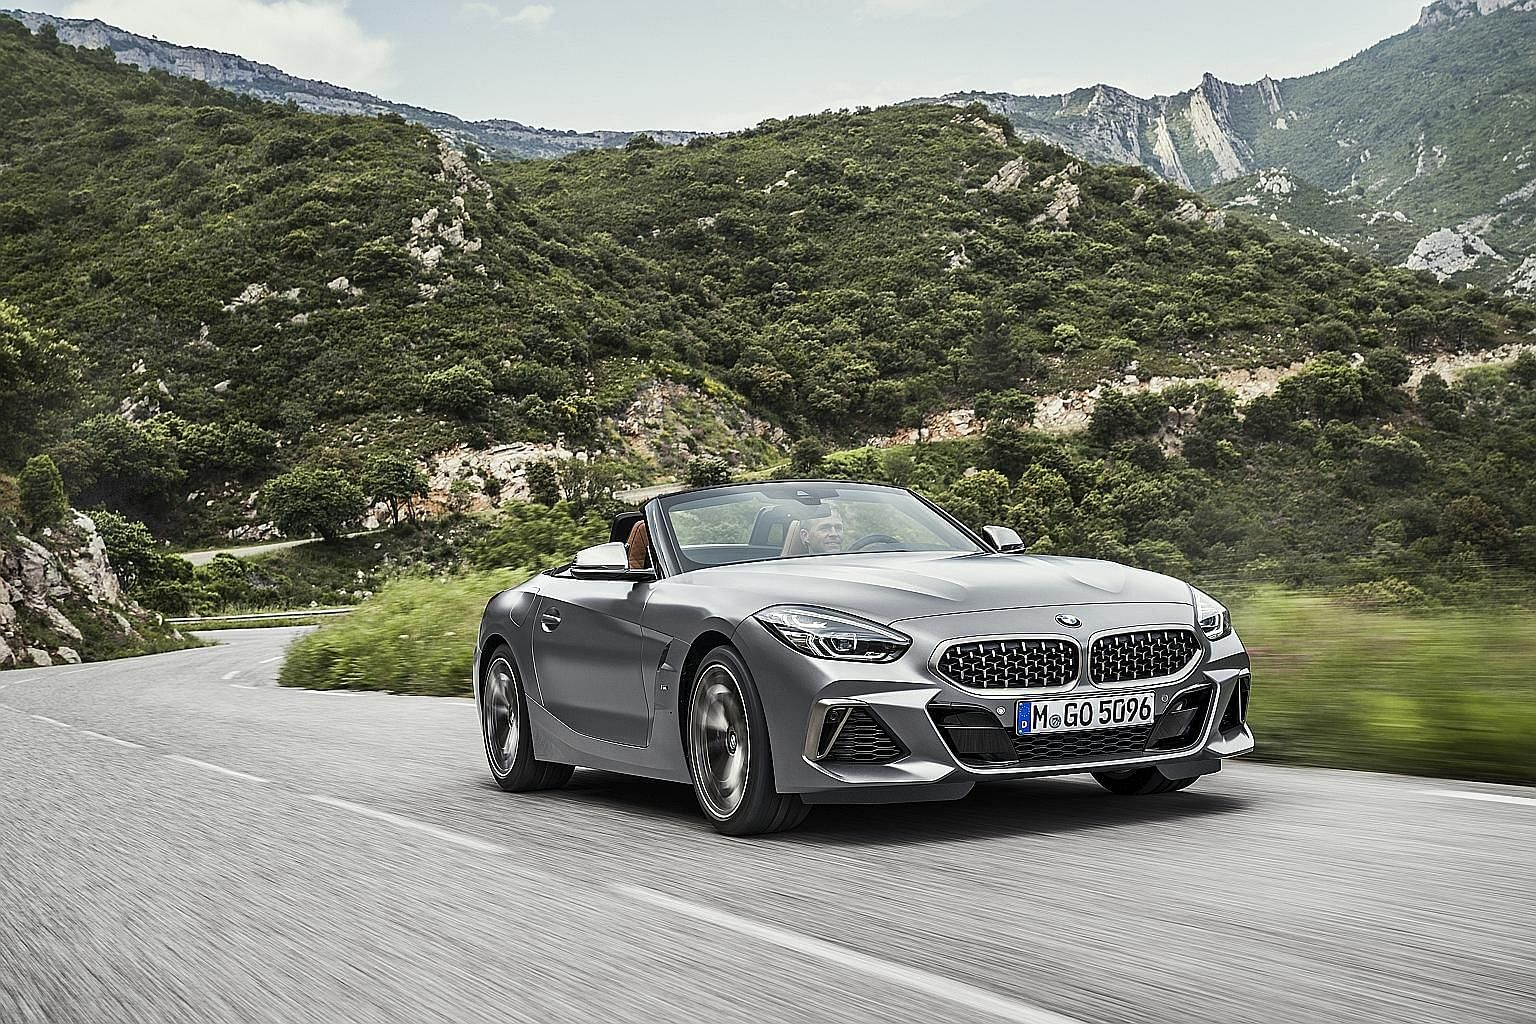 The soft top of the BMW Z4 goes down in 10 seconds, even on the move at up to 50kmh.